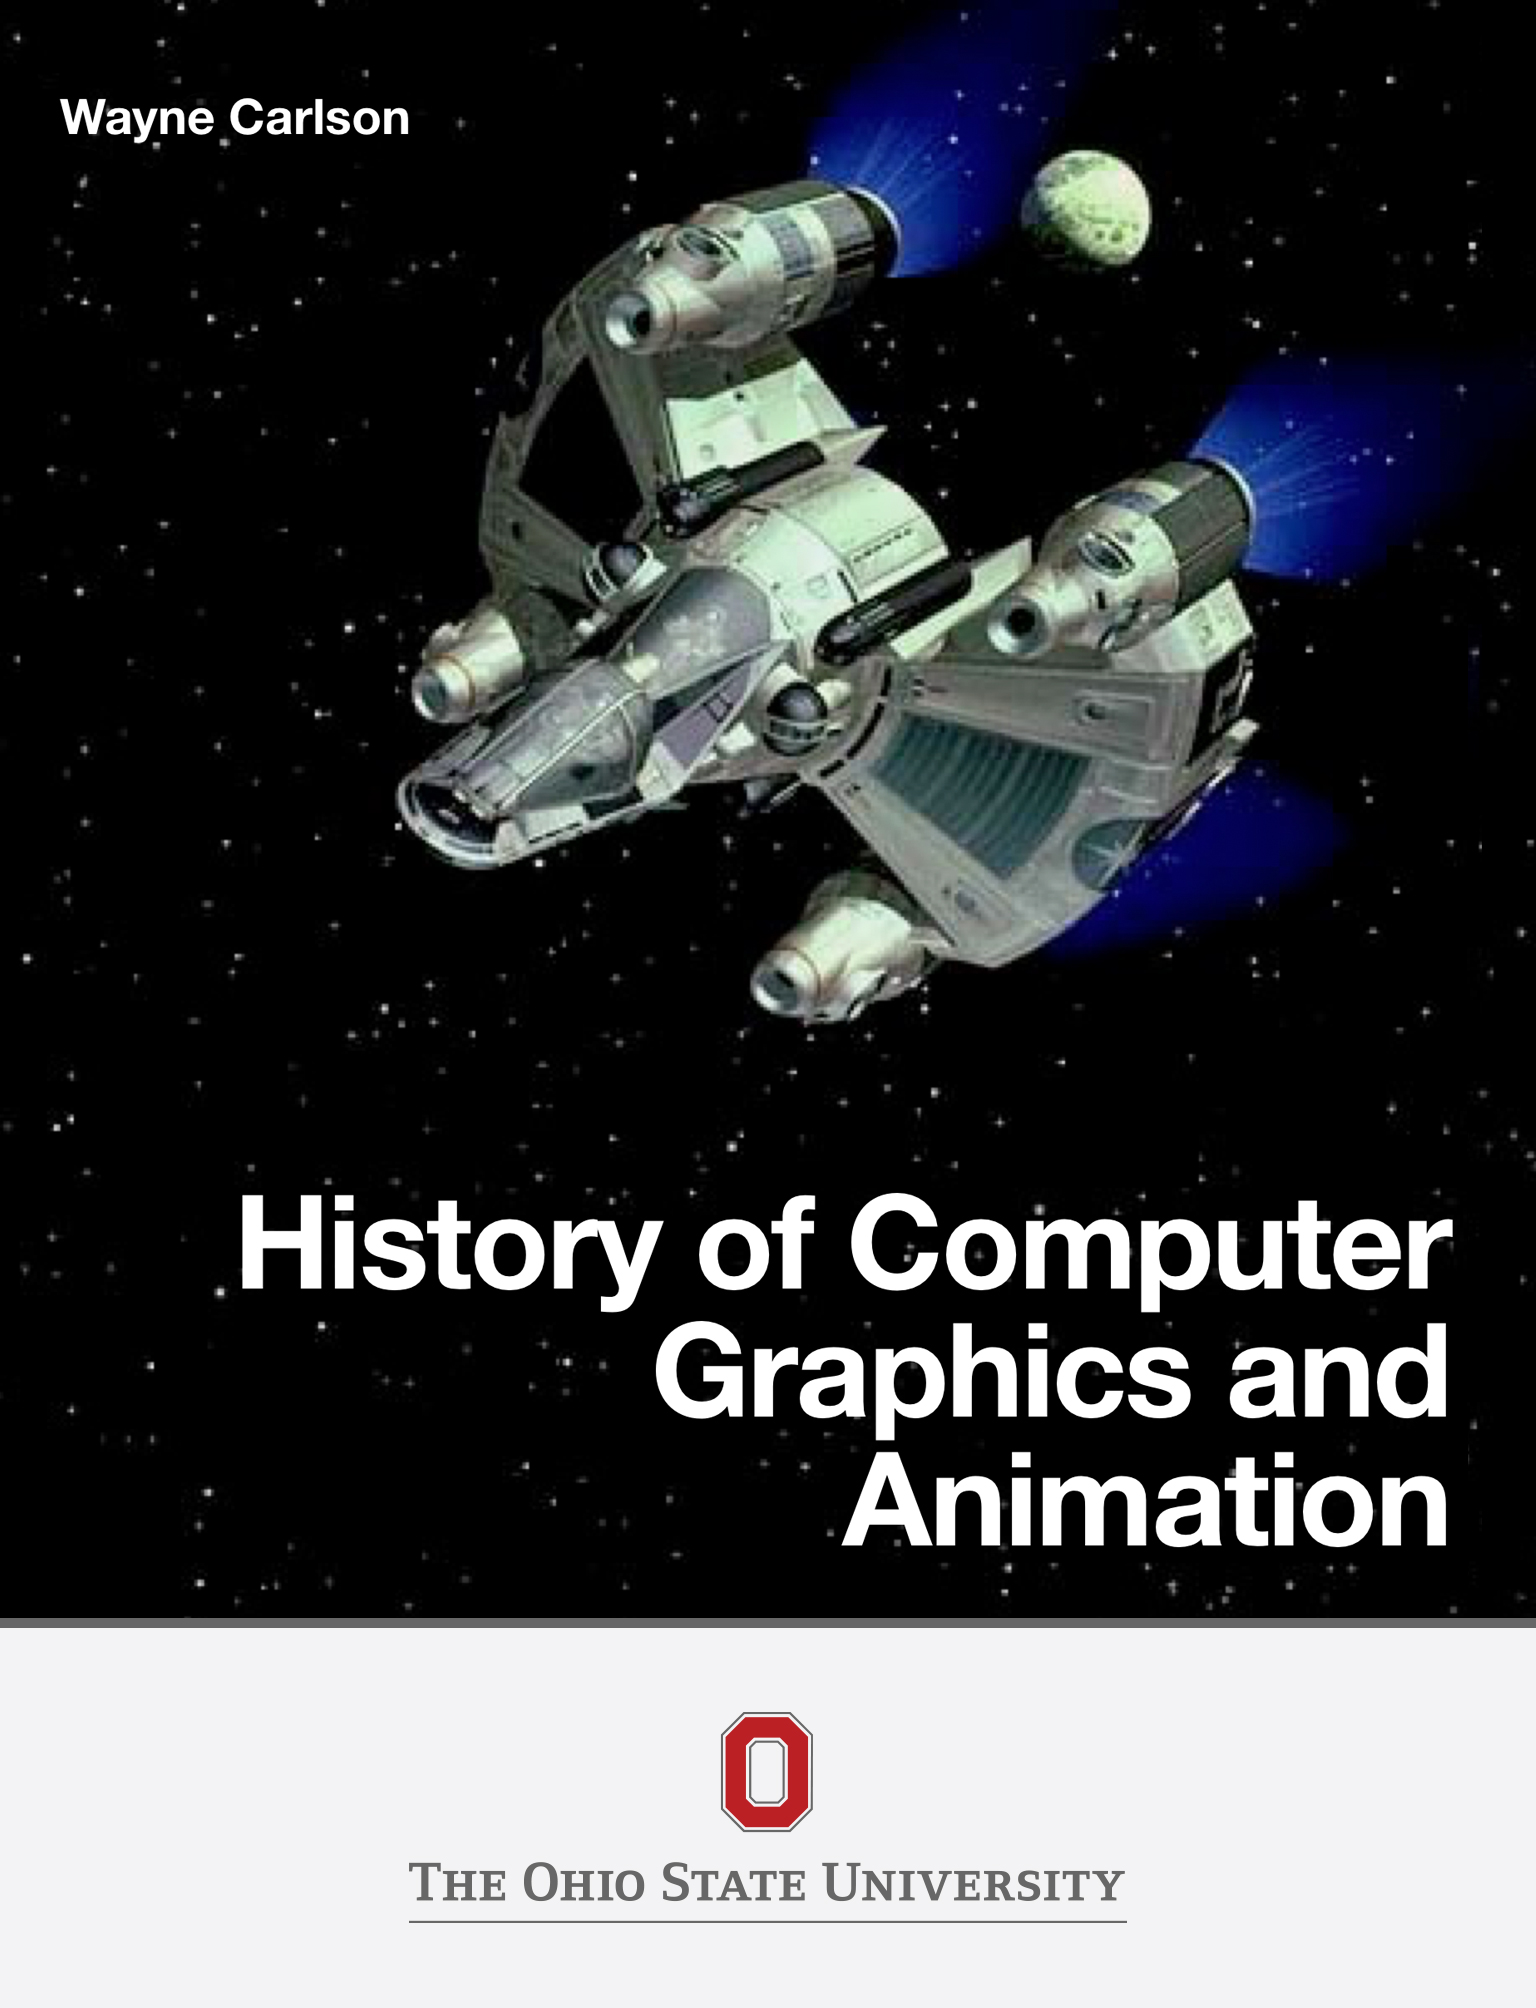 Cover image for Computer Graphics and Computer Animation: A Retrospective Overview